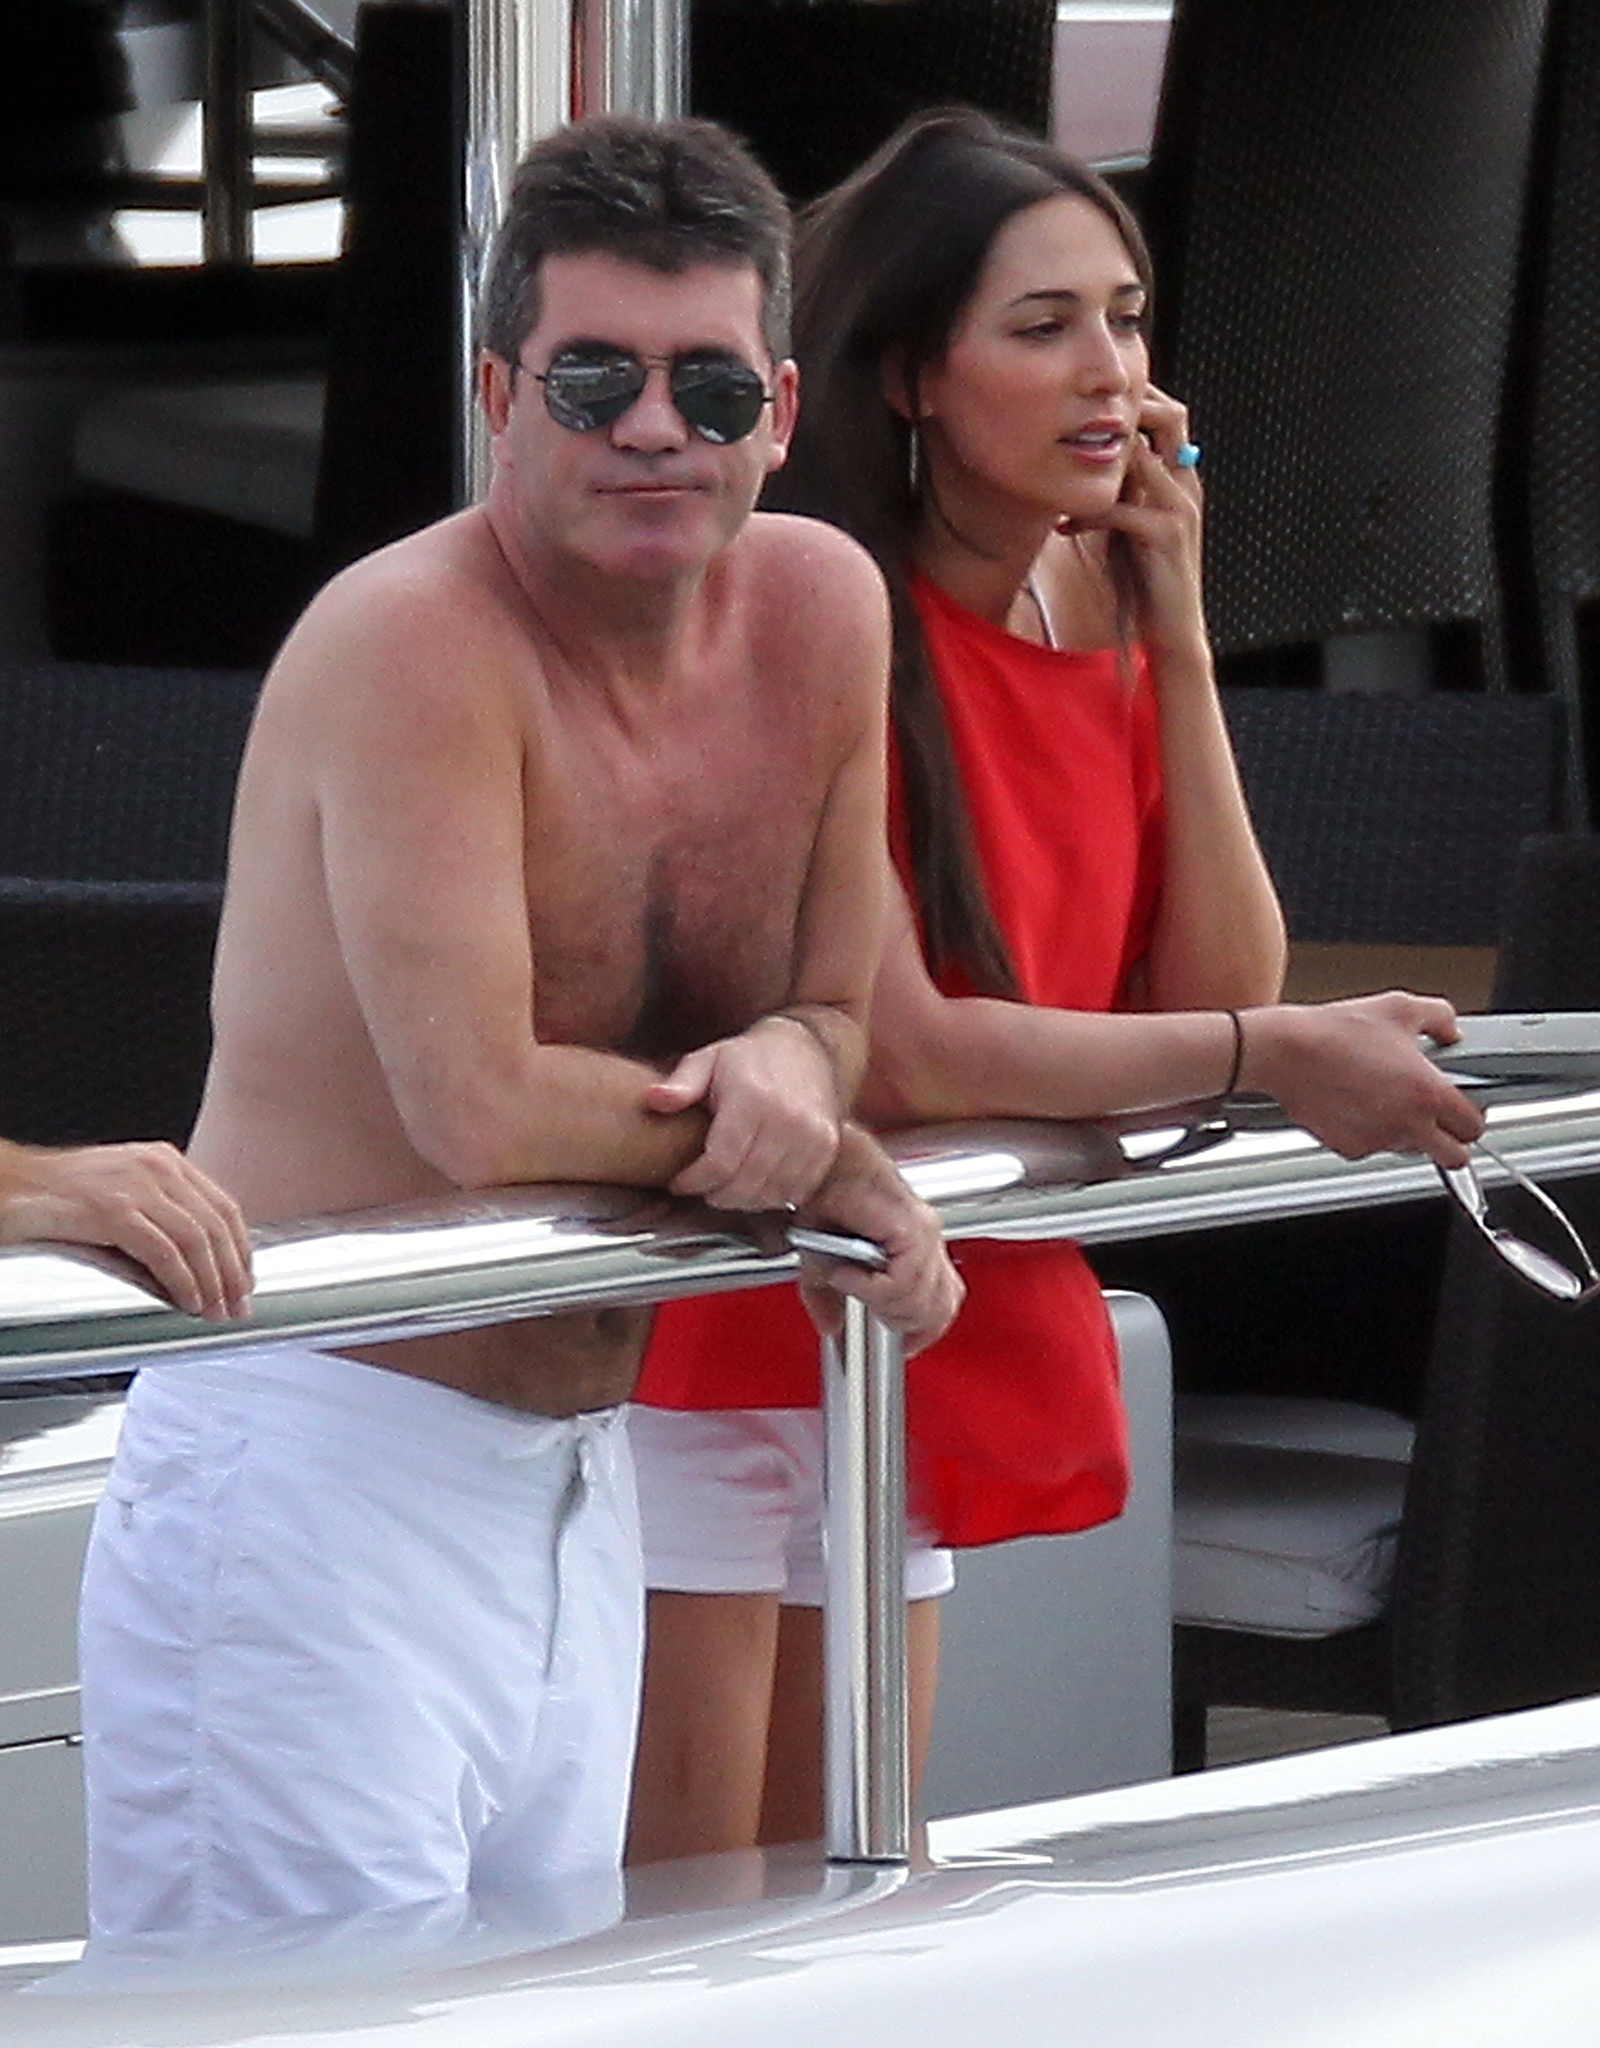 Simon Cowell and Lauren Silverman, 2011 (INFphoto.com)